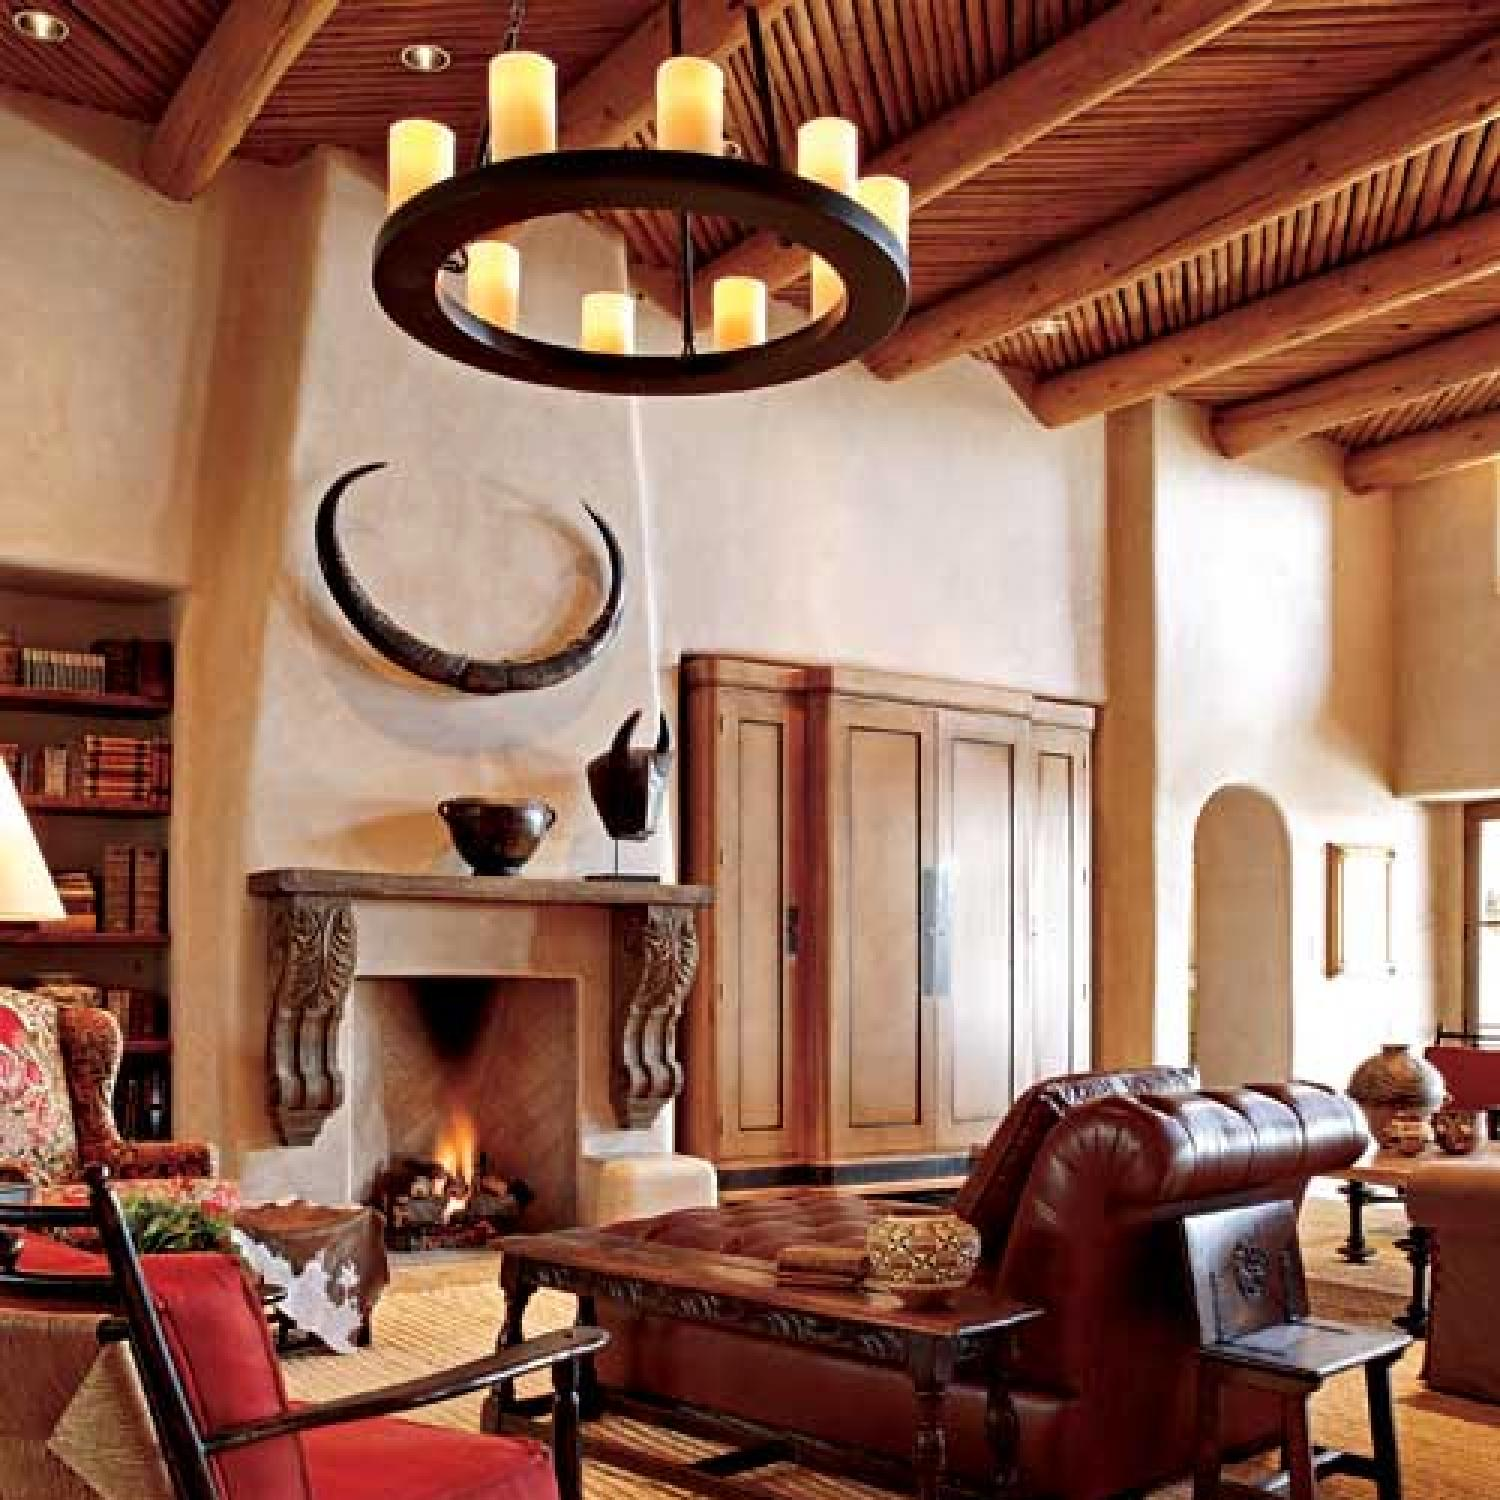 Home Interior Design Ideas For Kitchen: Pueblo-Style Home With Traditional Southwestern Design